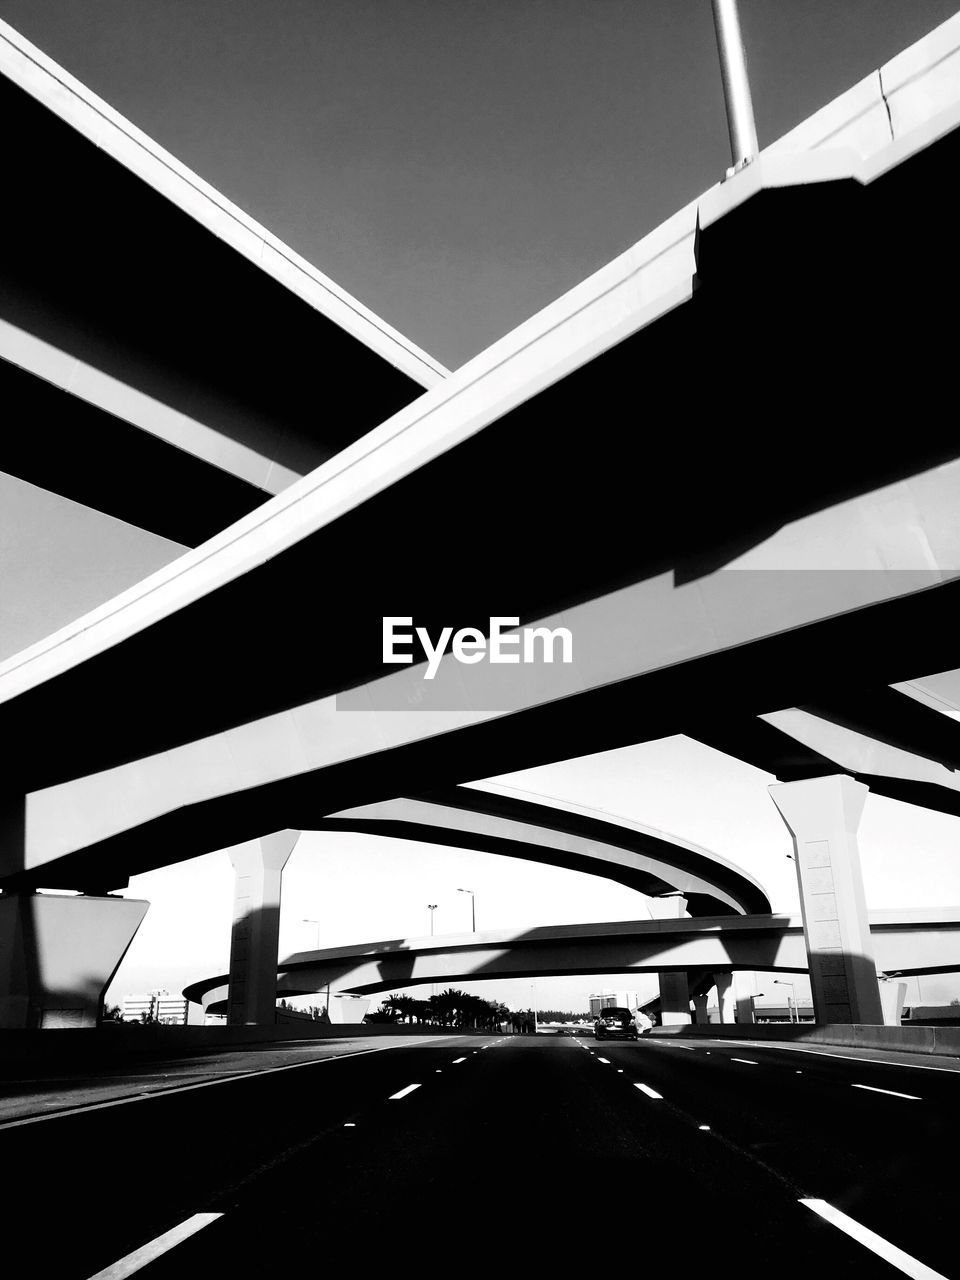 transportation, car, bridge - man made structure, road, mode of transport, land vehicle, highway, built structure, architecture, connection, car interior, day, windshield, street, car point of view, city, the way forward, low angle view, road sign, no people, road trip, outdoors, parking garage, close-up, sky